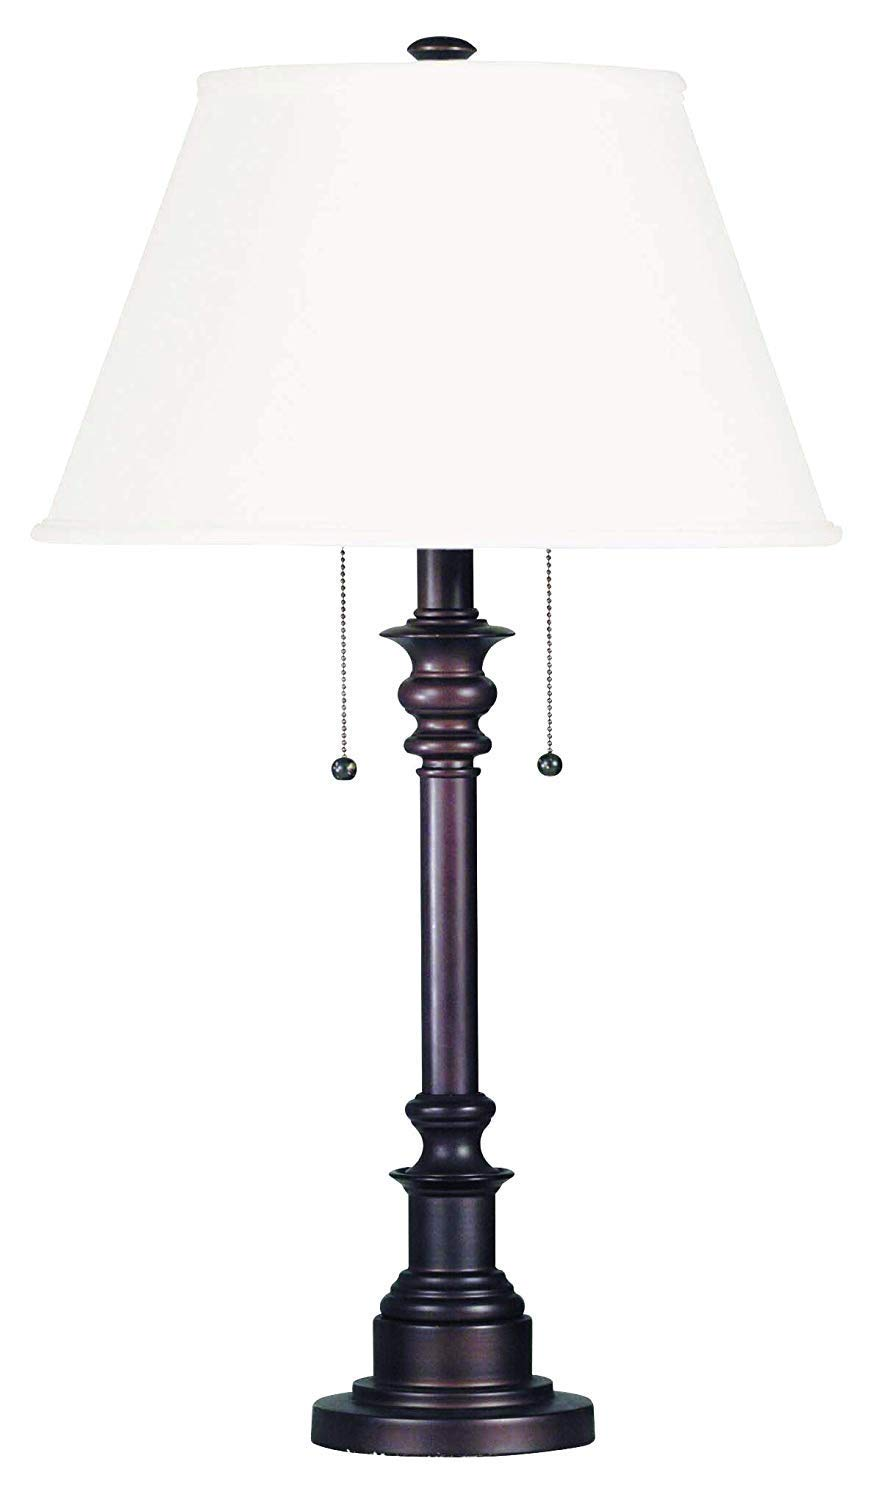 Kenroy Home Table Lamp with Bronze Finish, Dual On/Off Pull Chains, 30 Inch Height, White Natural Linen Shade